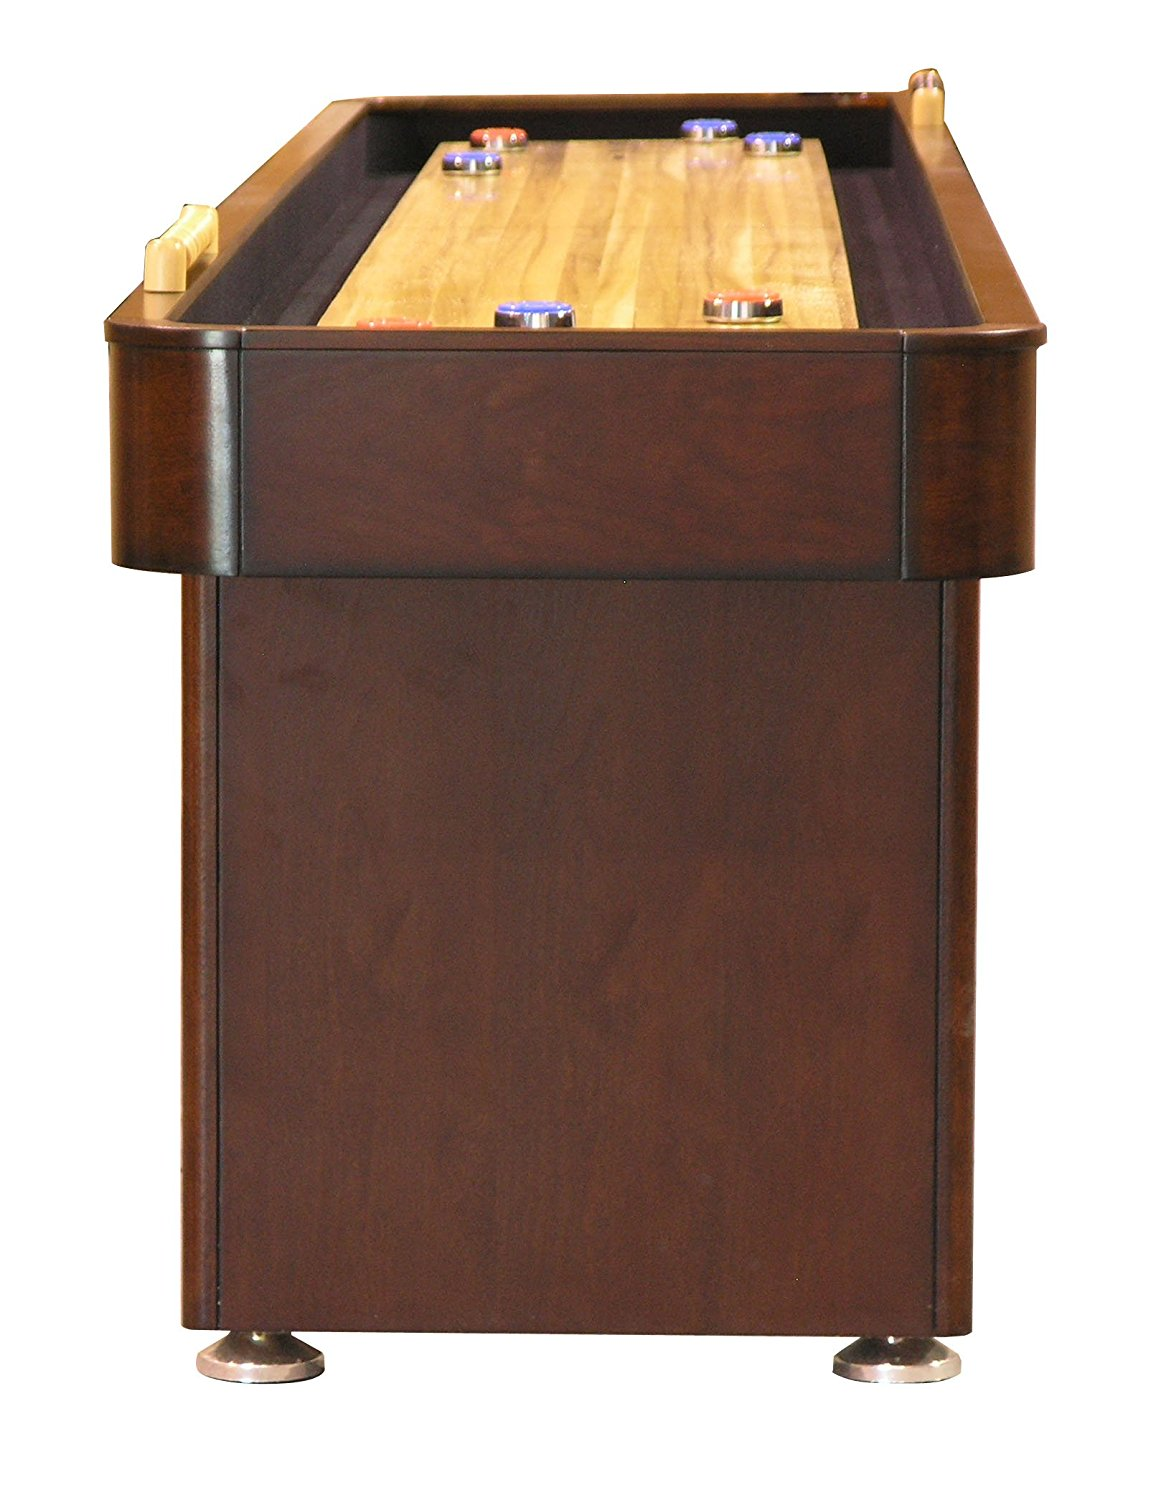 Fairview Game Signature Shuffleboard Table